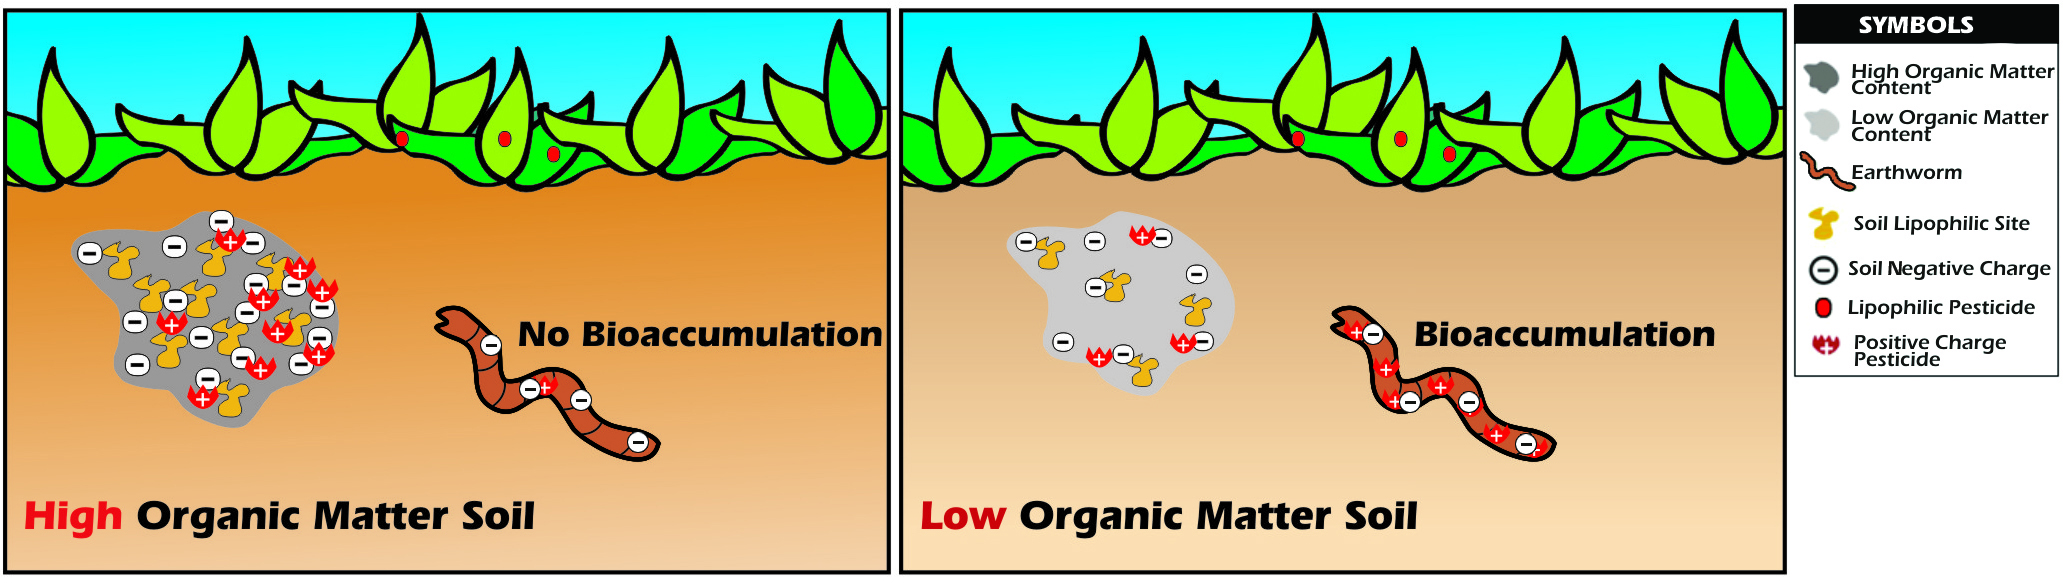 Lecture 6: Soil contamination and Bioremediation of soil | Dr.M.Azizul's  Blog